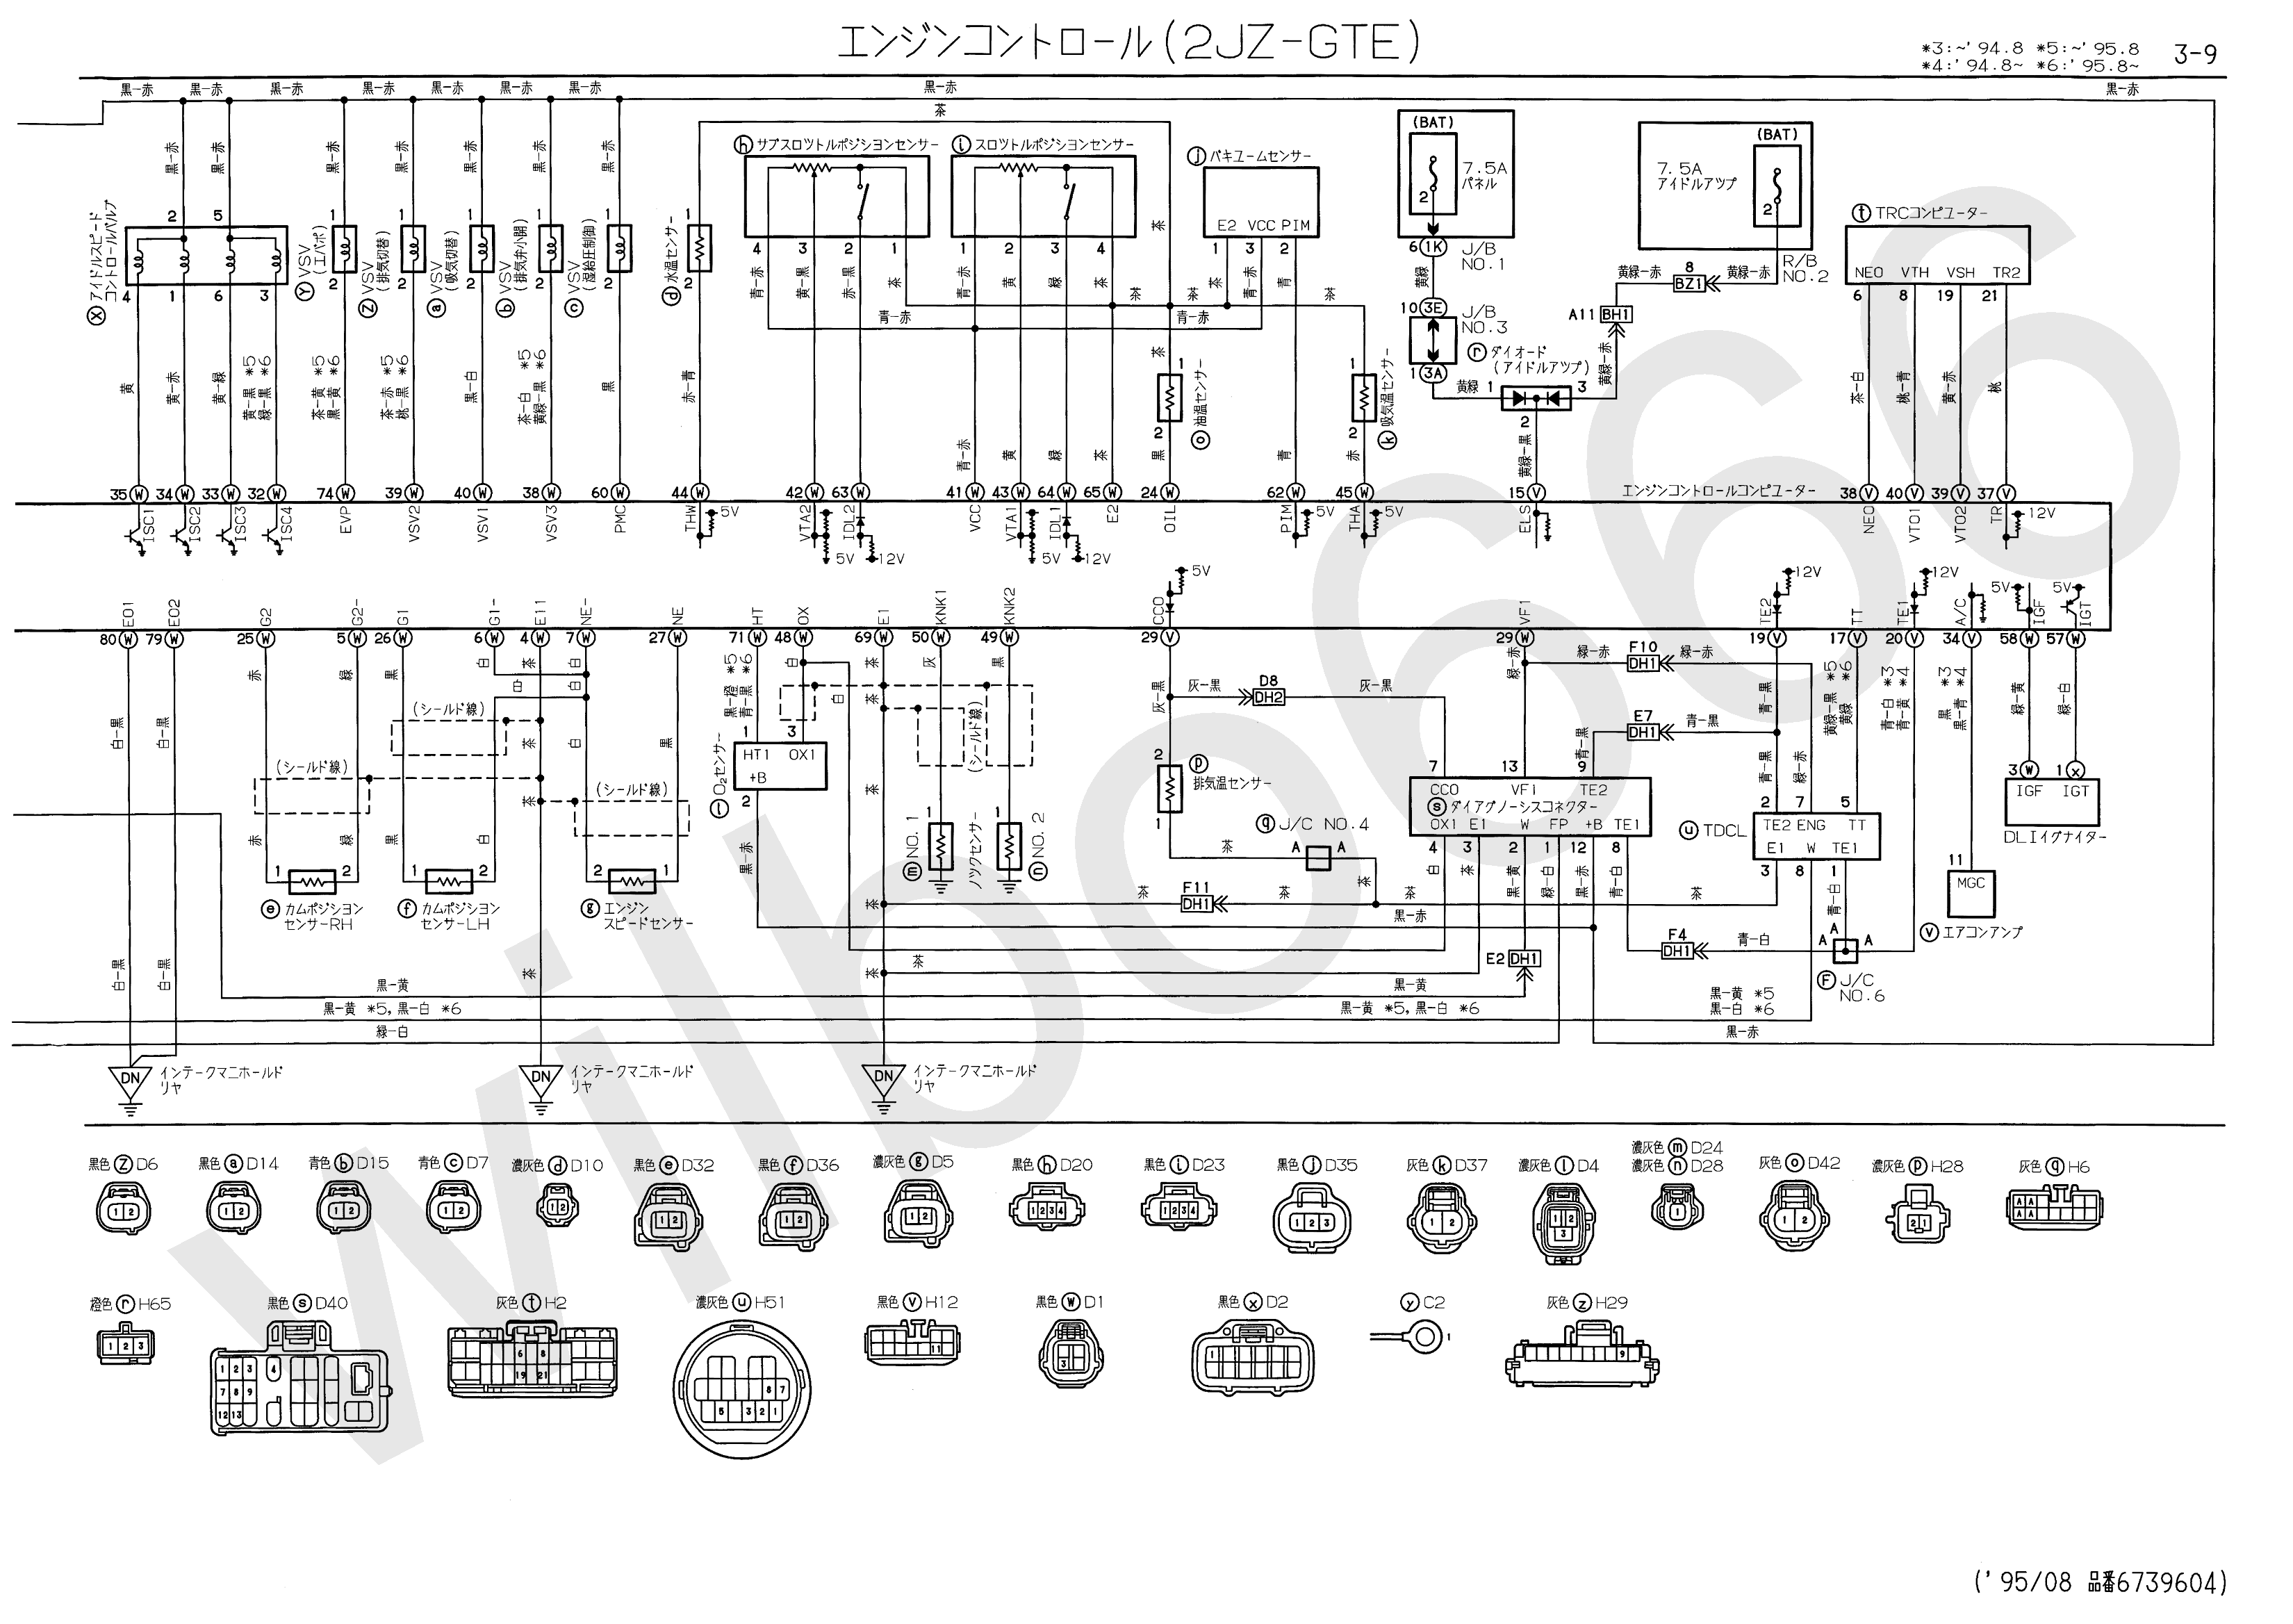 2001 Kia Spectra Fuse Box Diagram. Kia. Auto Fuse Box Diagram